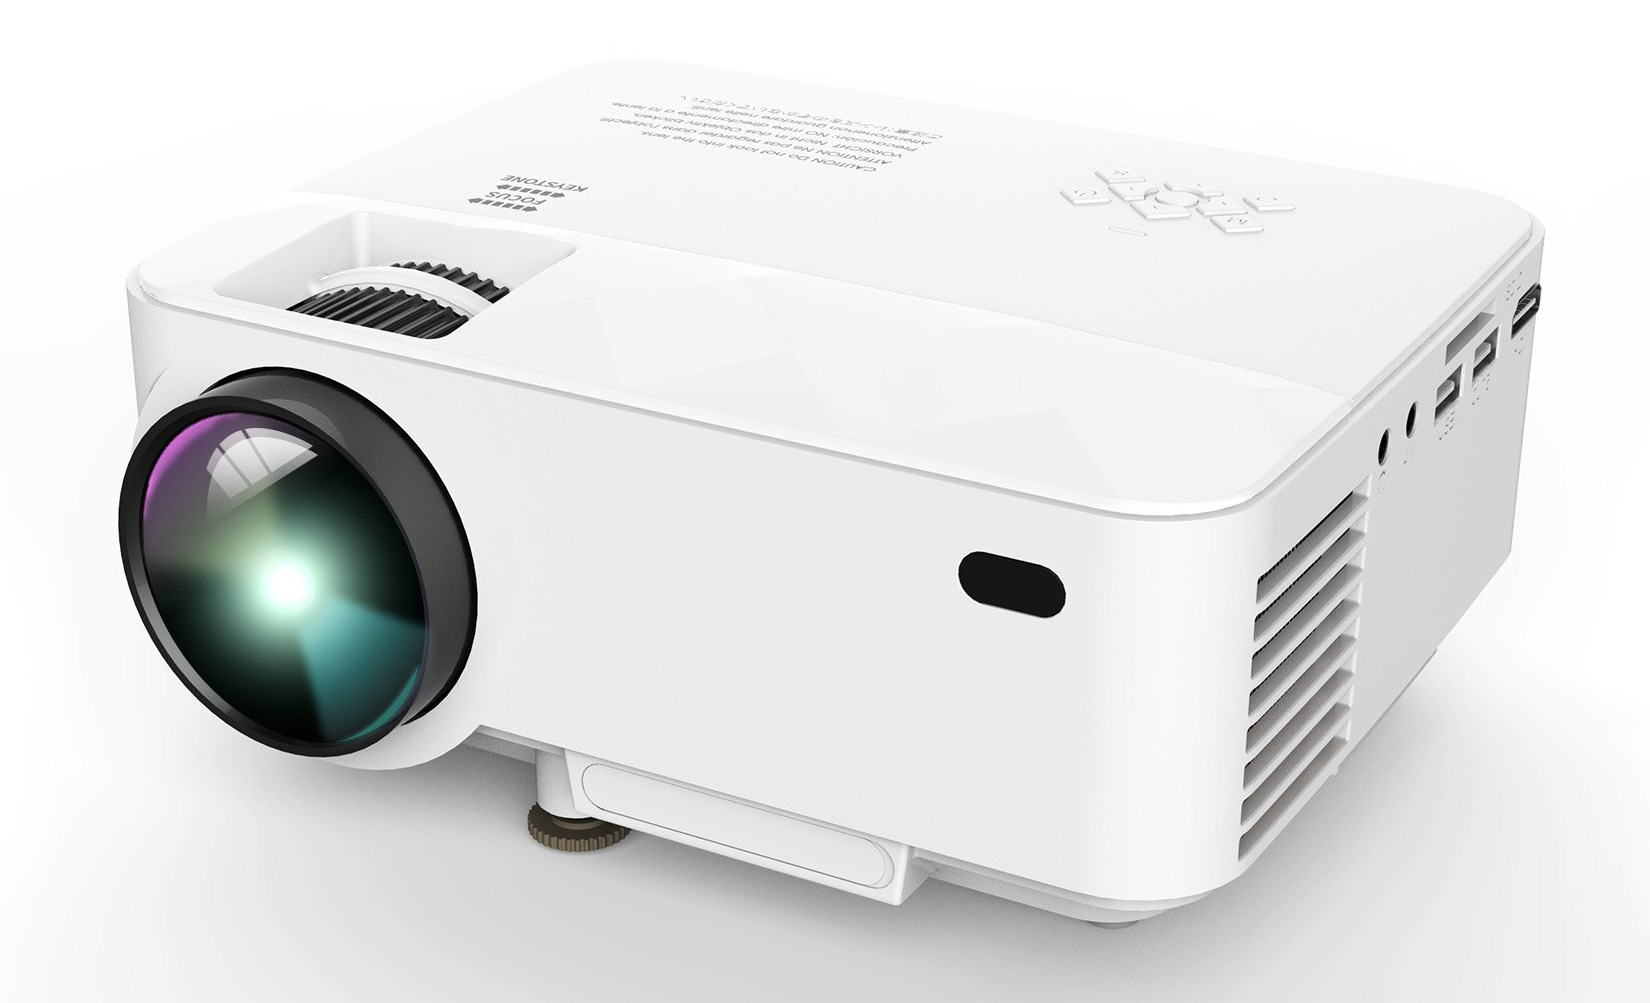 Dbpower t20 portable mini led projector review for Portable projector reviews